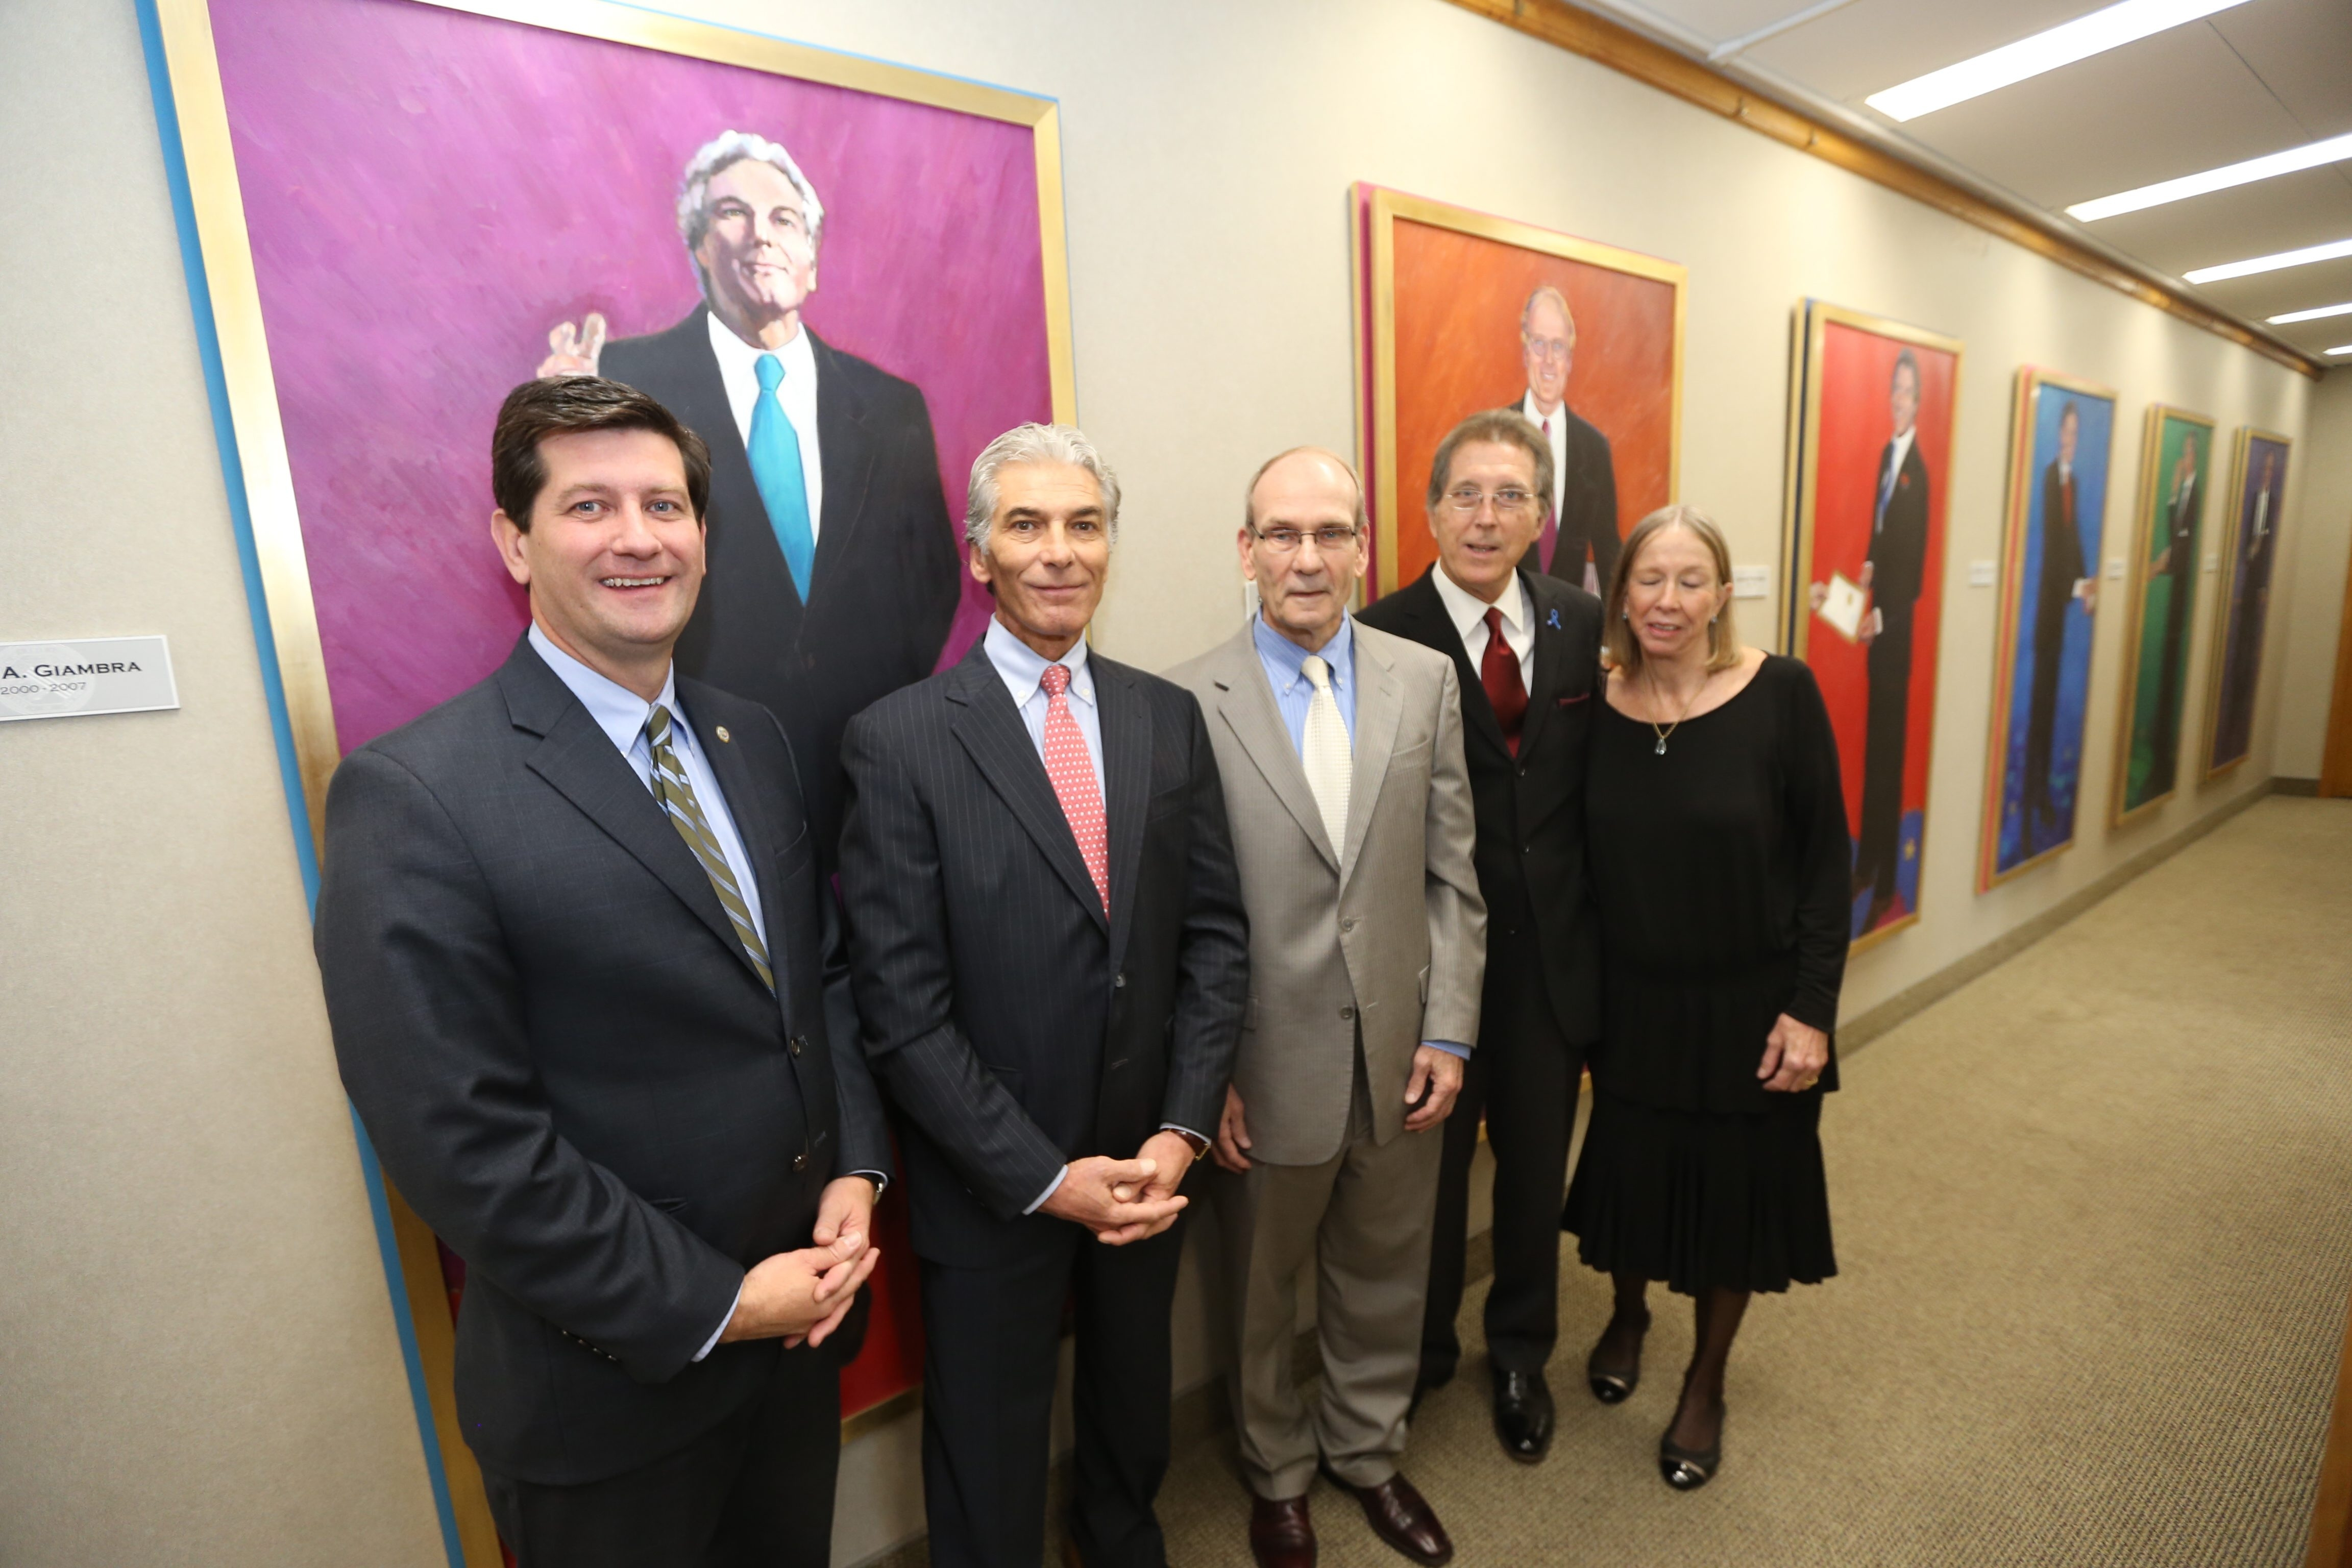 From left, County Executive Mark Poloncarz with predecessors Joel A. Giambra, Dennis Gorski and Ed Rutkowski and artist Mary Smith on Wednesday after the unveiling of six portraits.